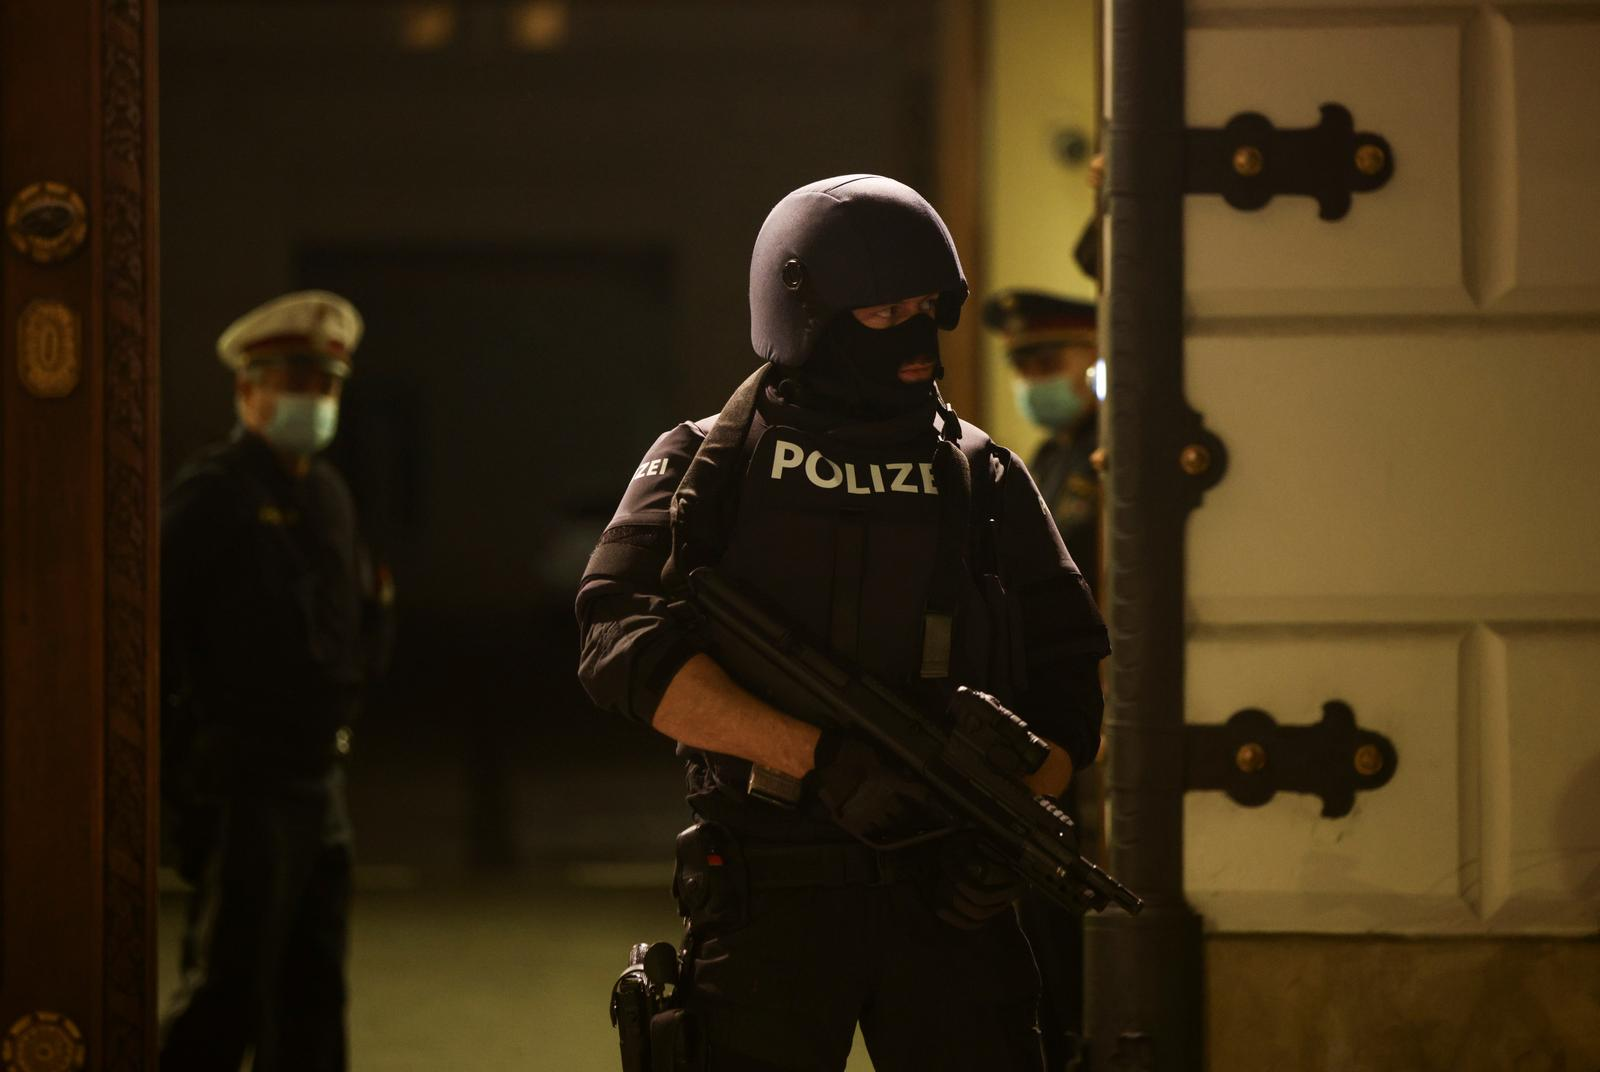 A police officer stands guard in front of the Interior Ministry as a news conference takes place after exchanges of gunfire in Vienna, Austria November 3, 2020. Photo: Reuters